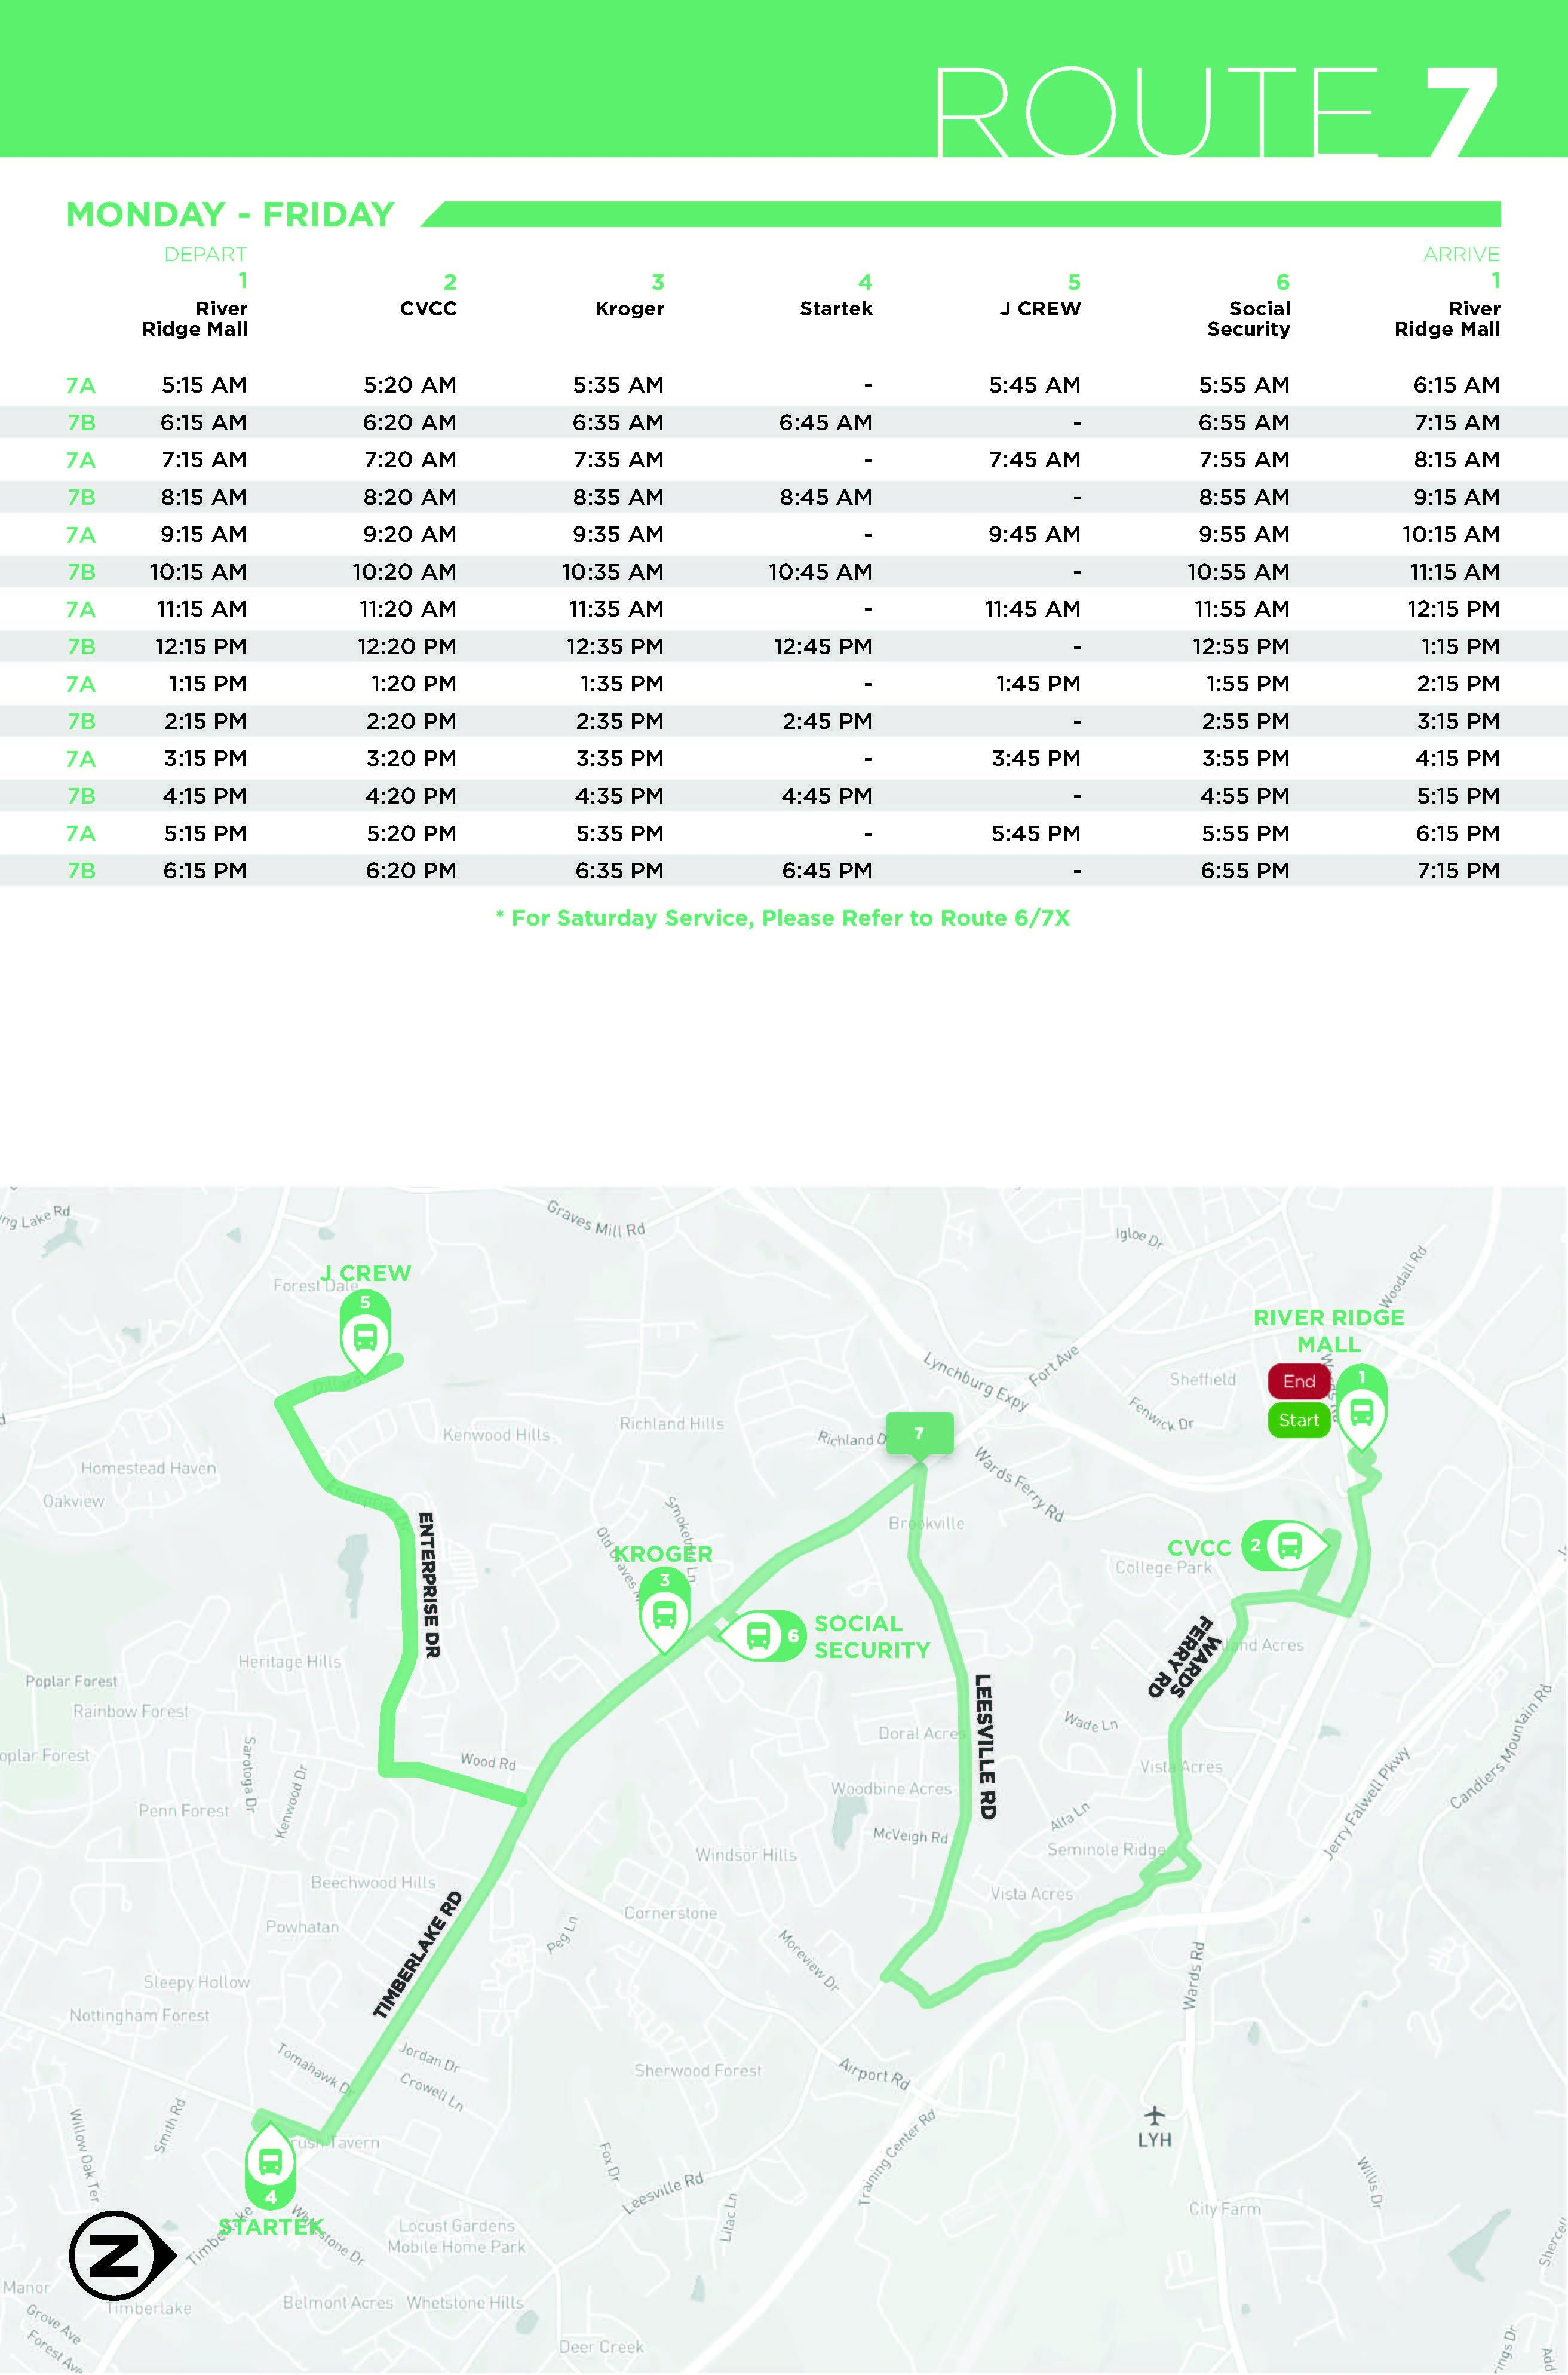 Route 7 Map and Schedule